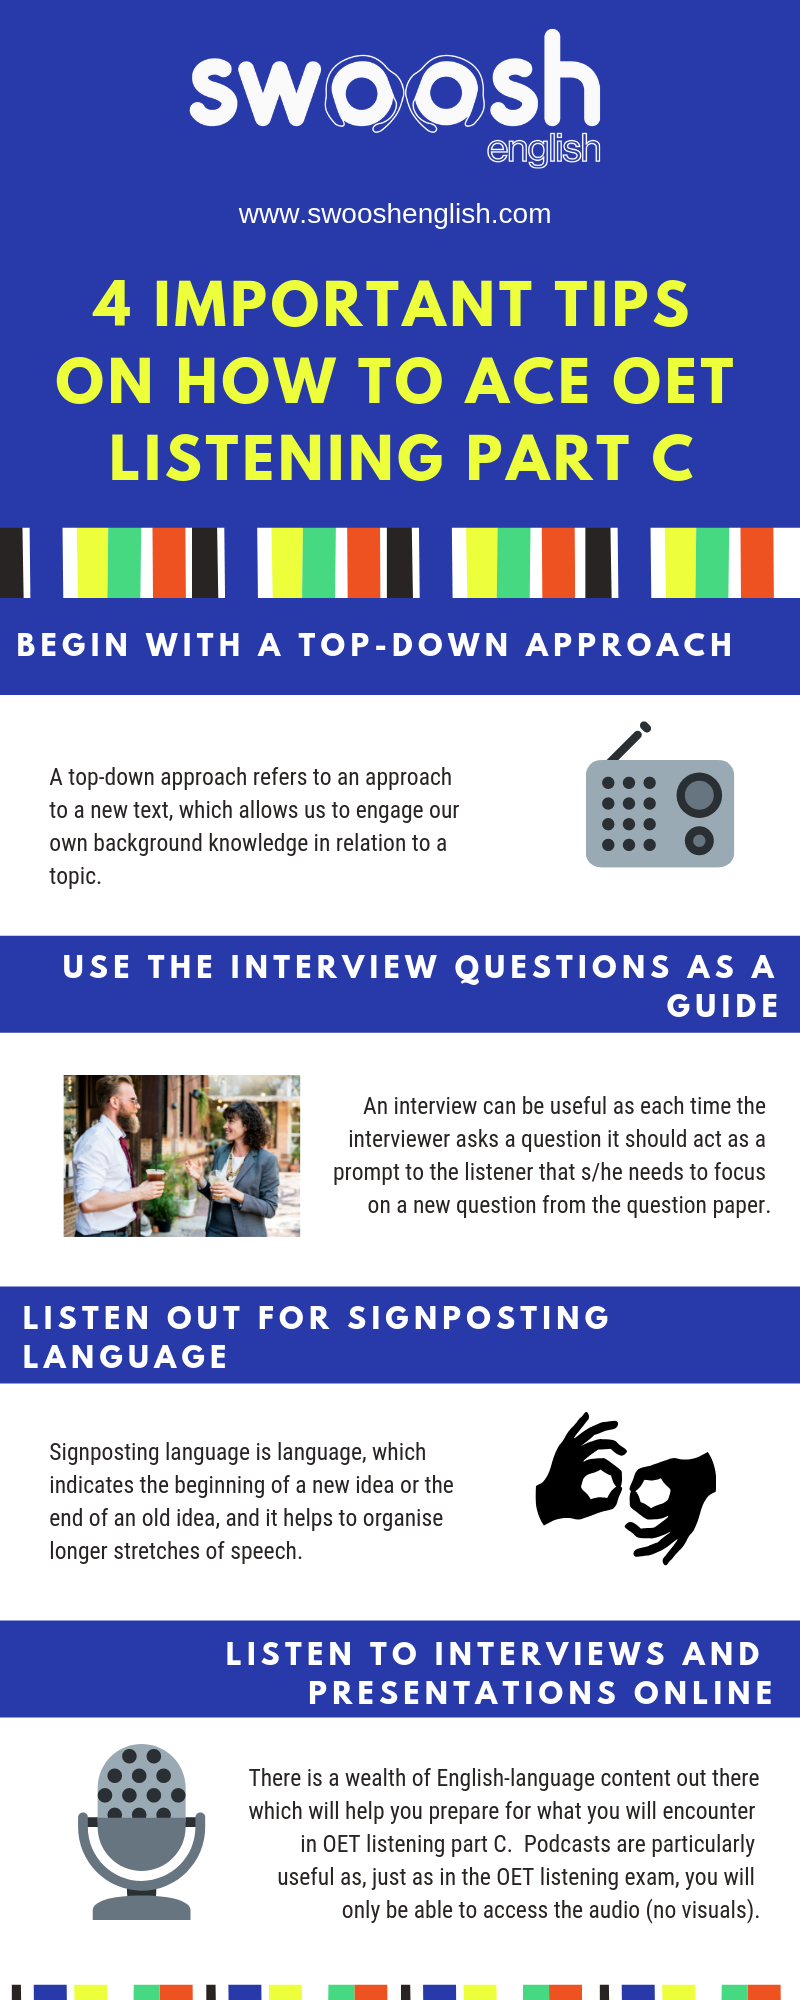 OET-Exam-Tips-On-How-To-Ace-OET-Listening-Part-C